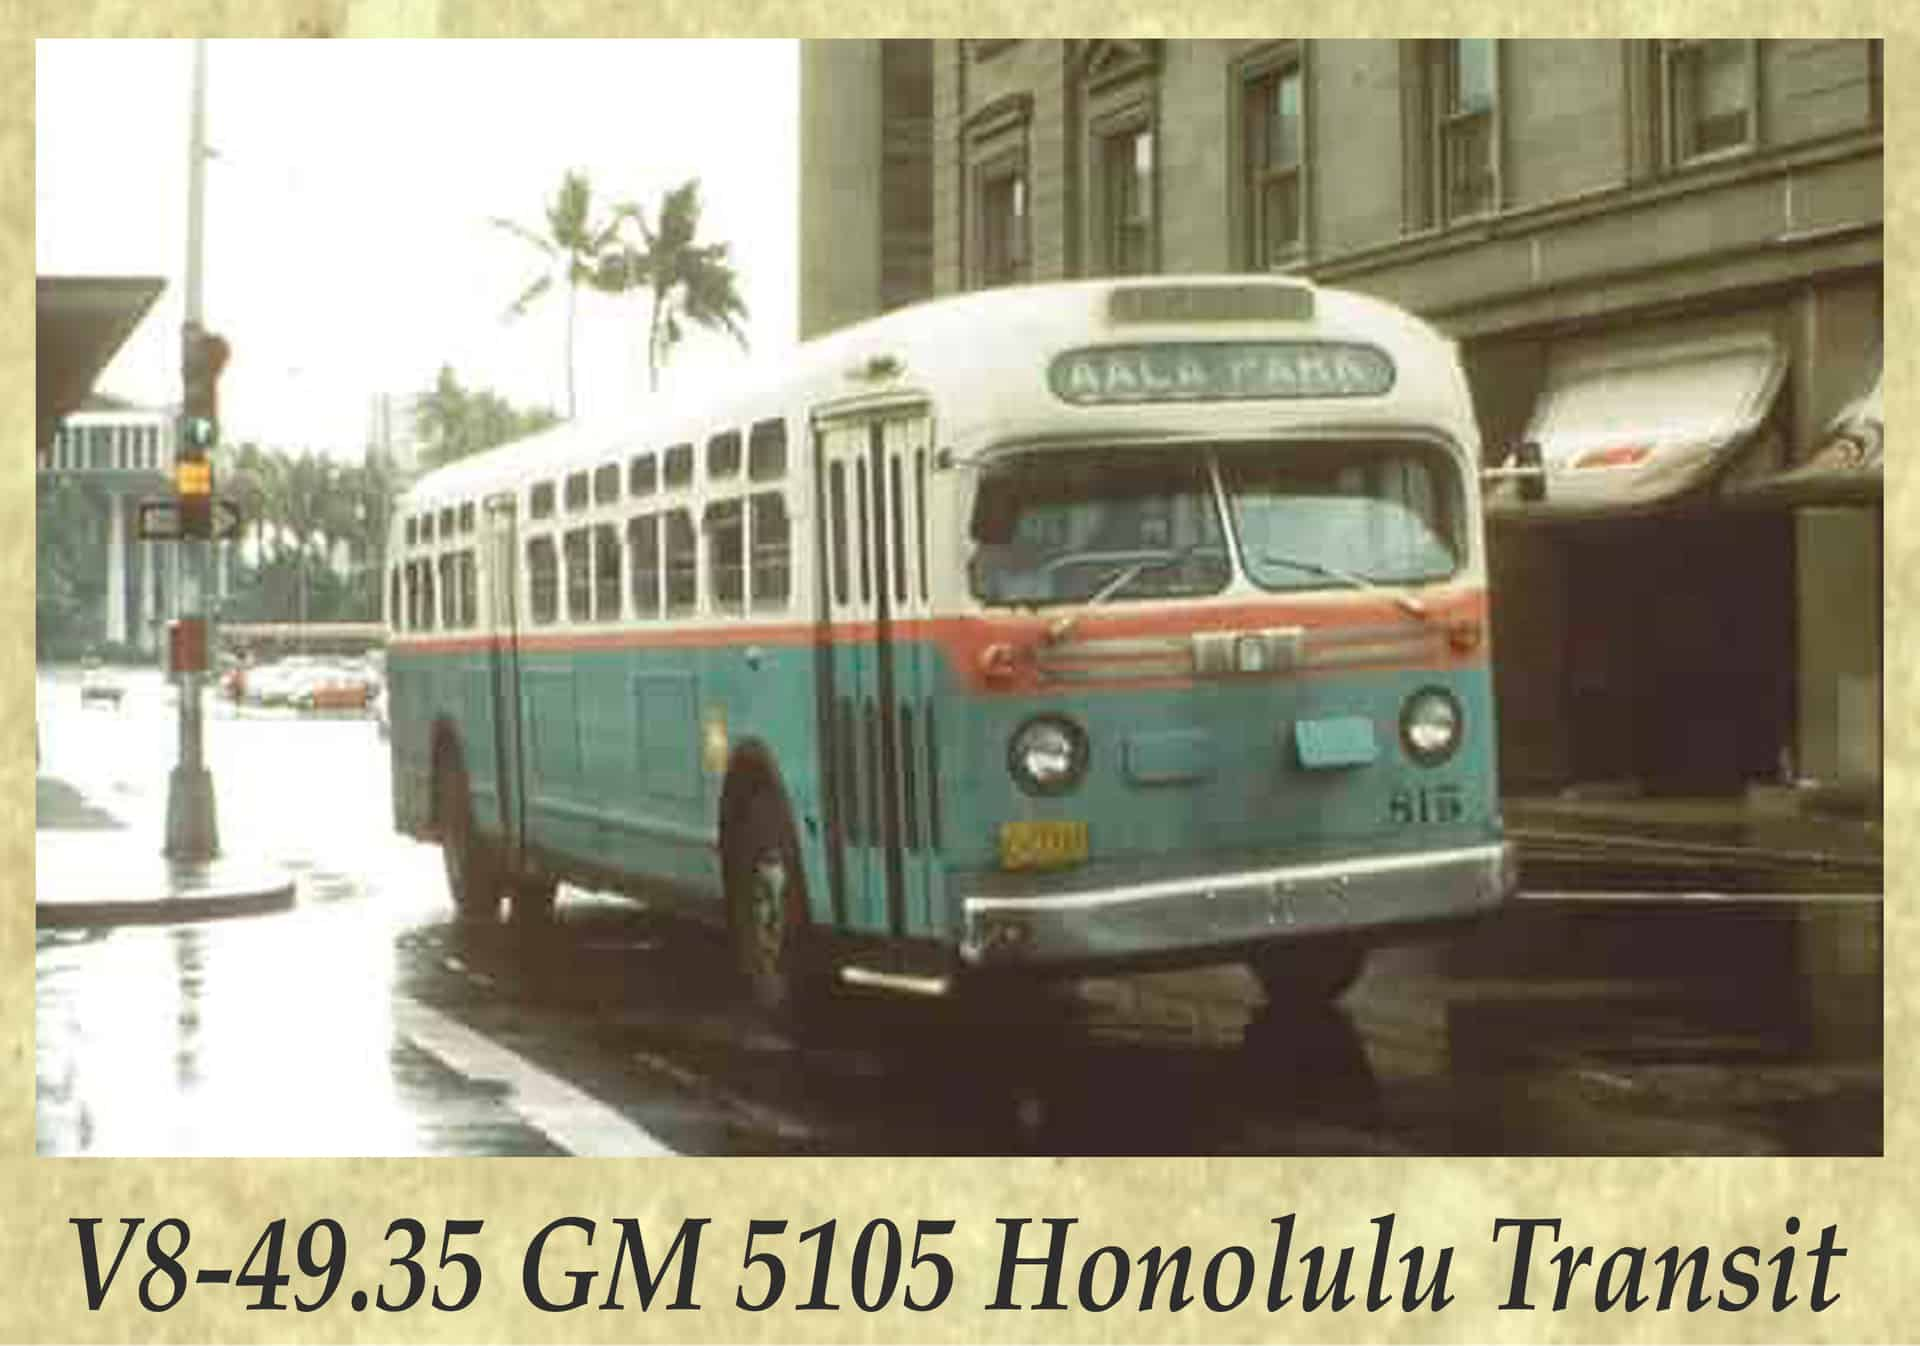 V8-49.35 GM 5105 Honolulu Transit